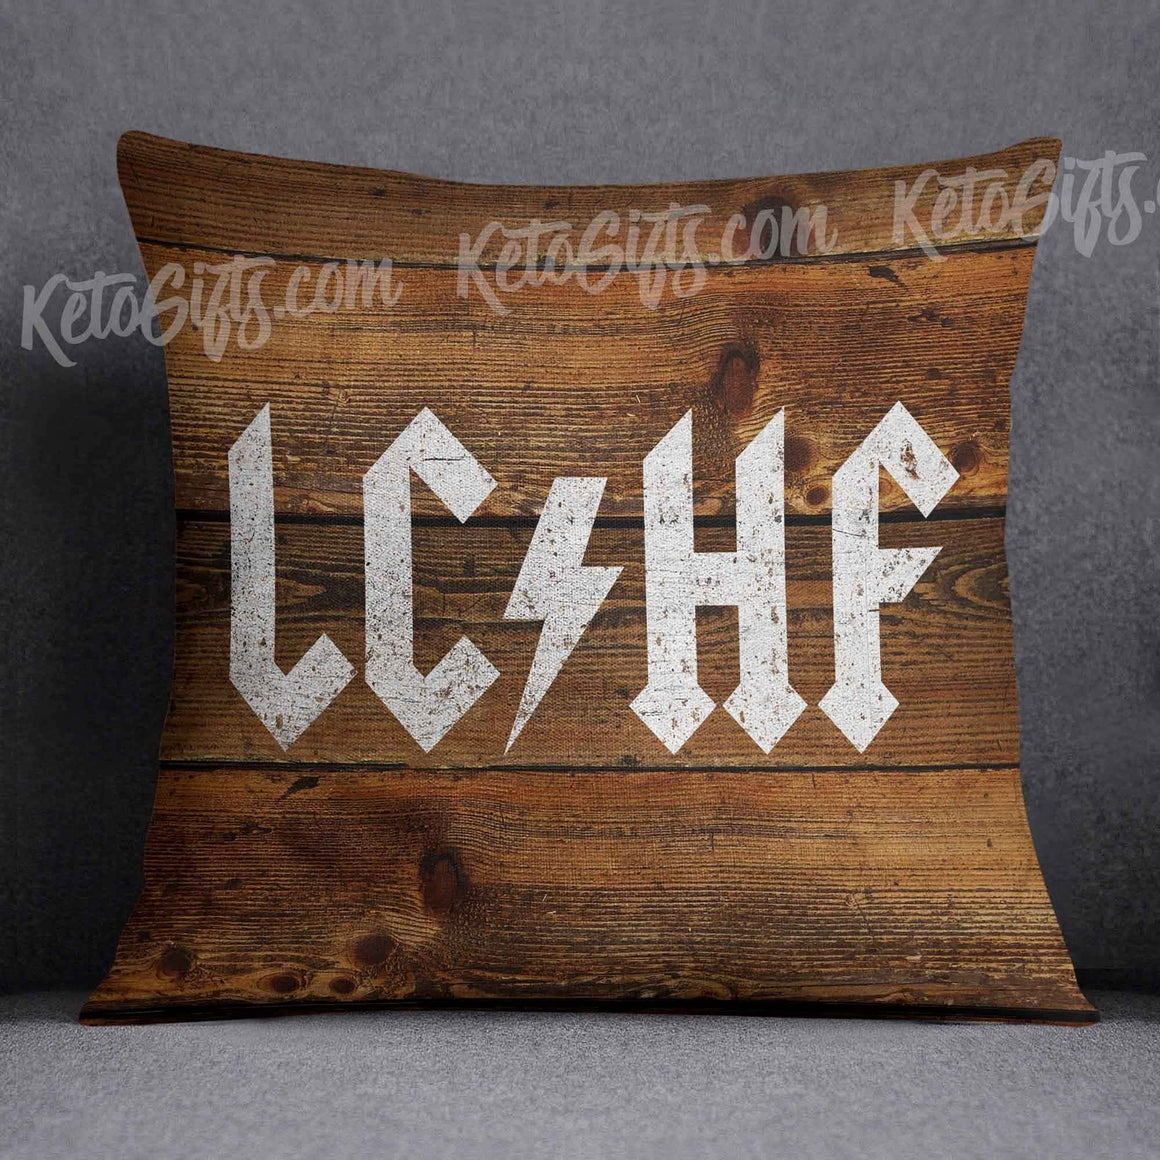 Keto Pillow LCHF ACDC Paint on Wood